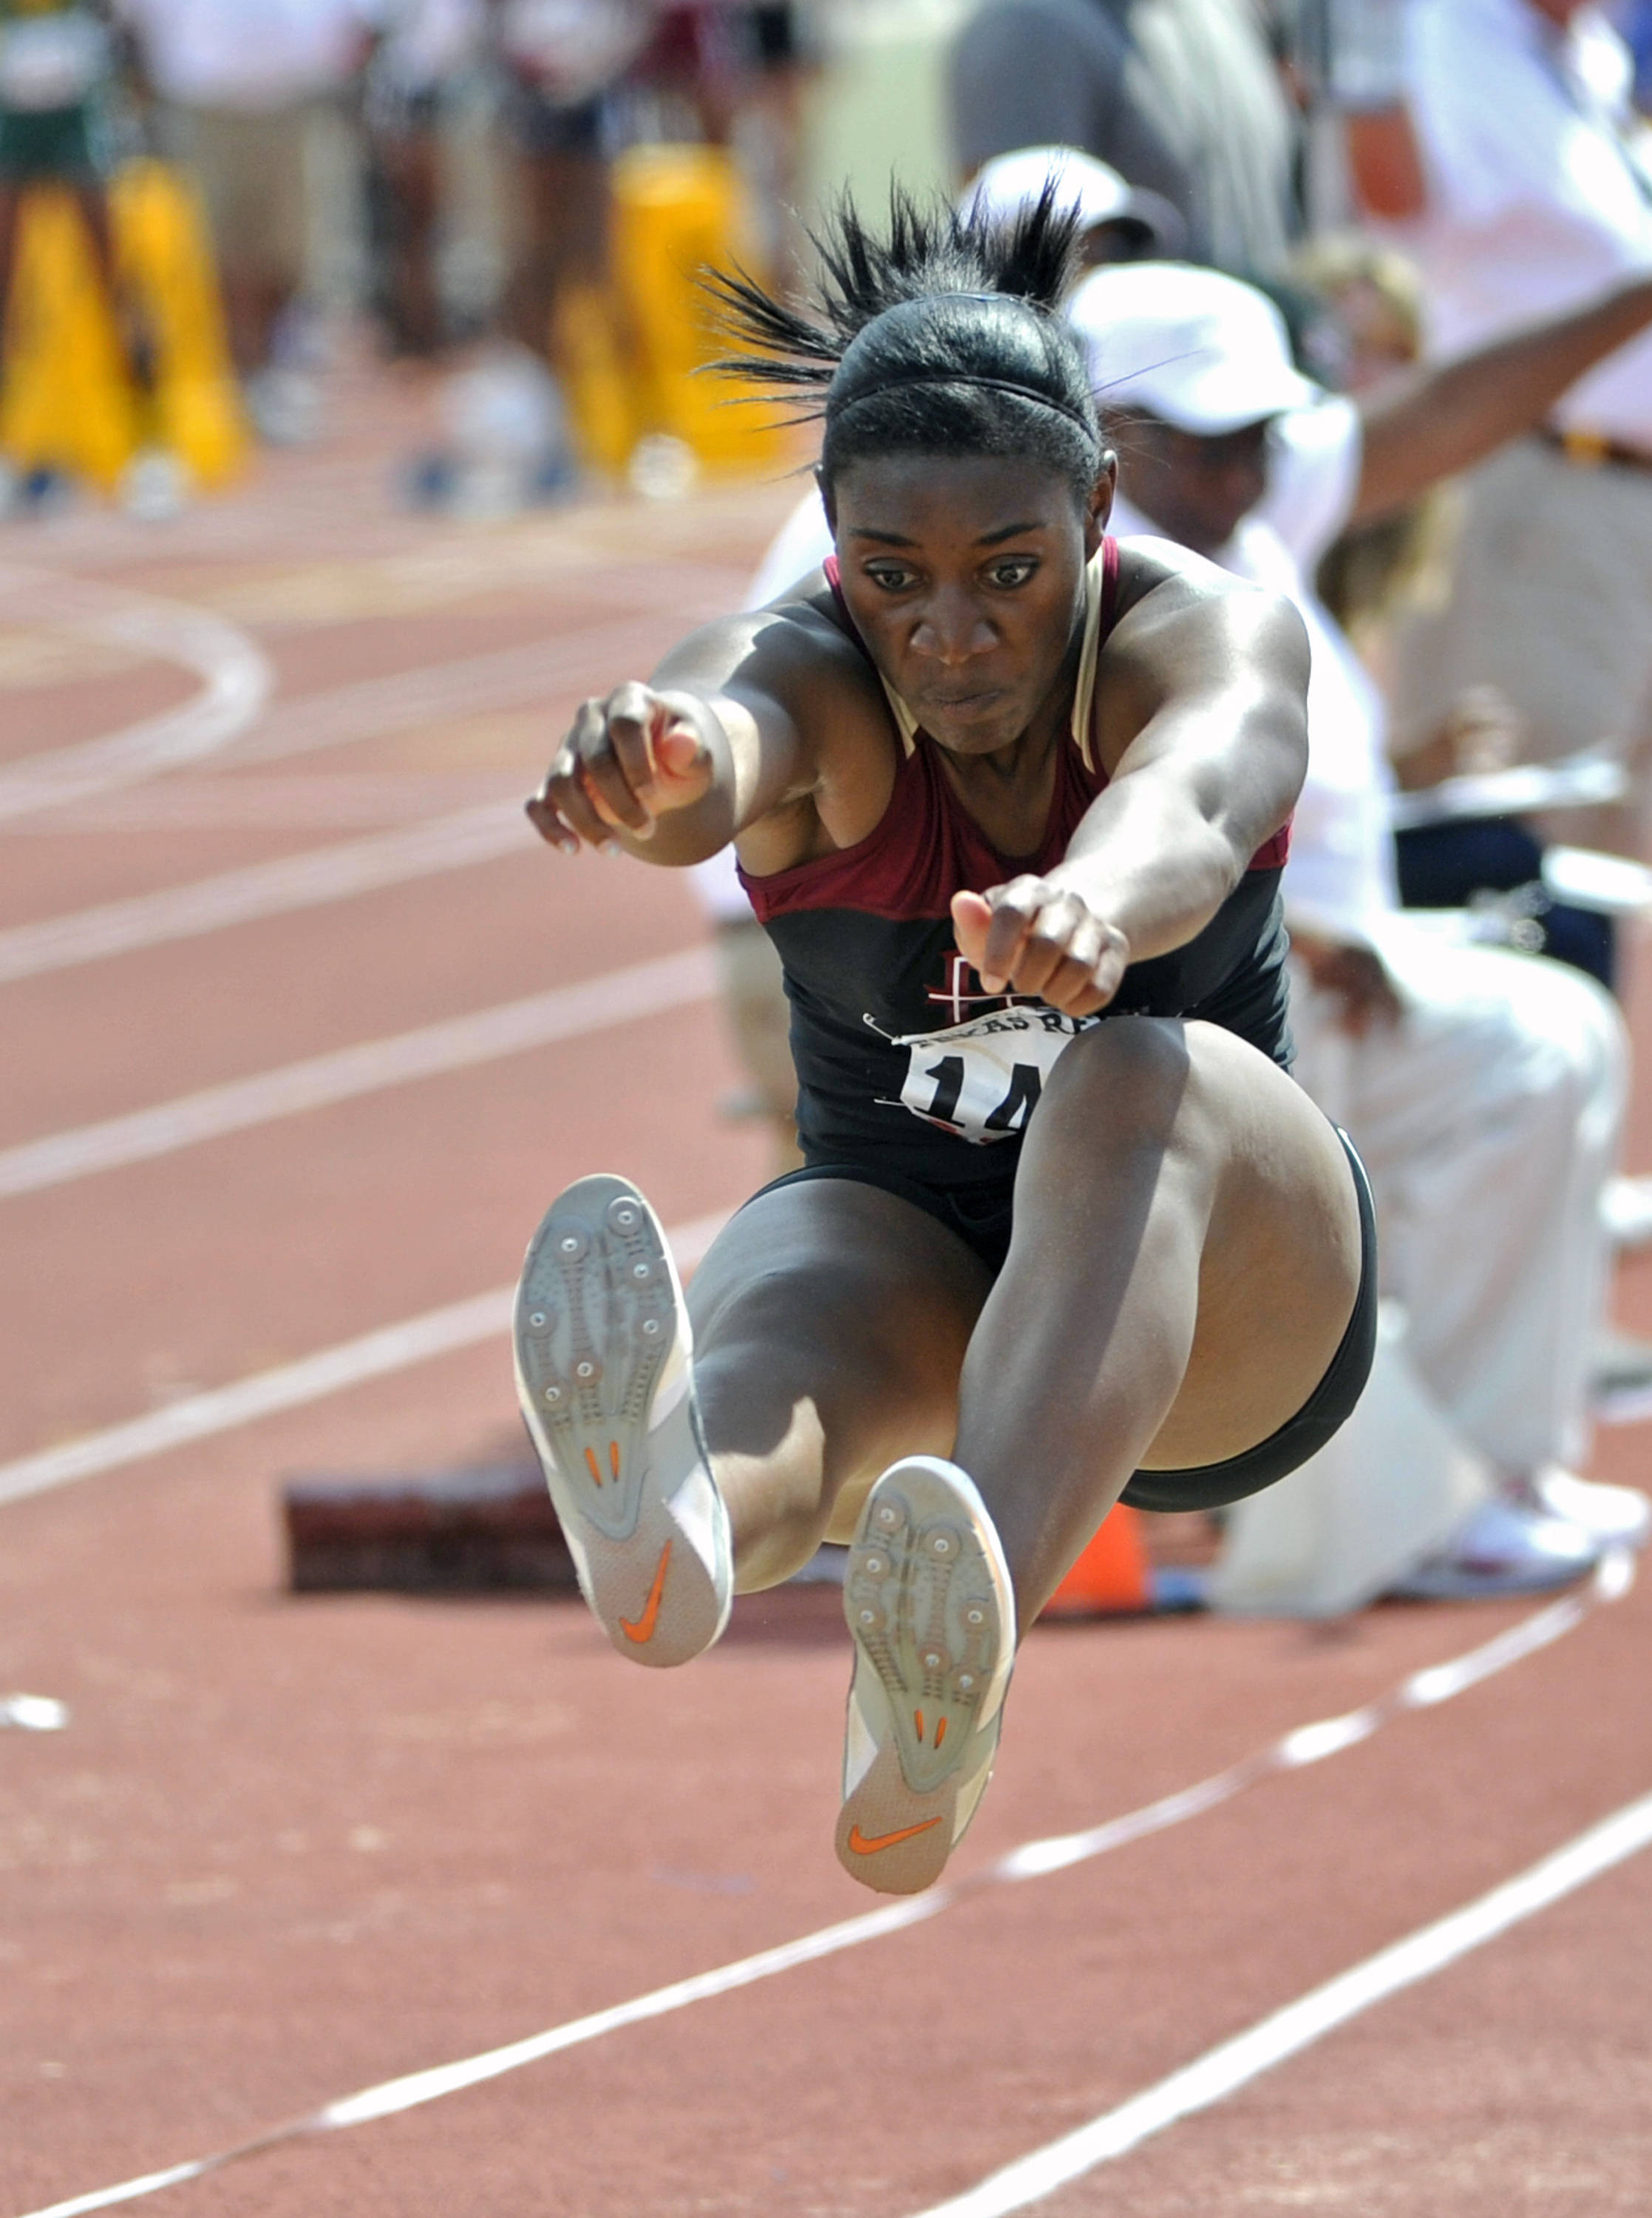 Florida State's Michelle Jenije competes in the women's triple jump during the Texas Relays athletics meet on Friday, March 30, 2012, in Austin, Texas. (AP Photo/Michael Thomas)